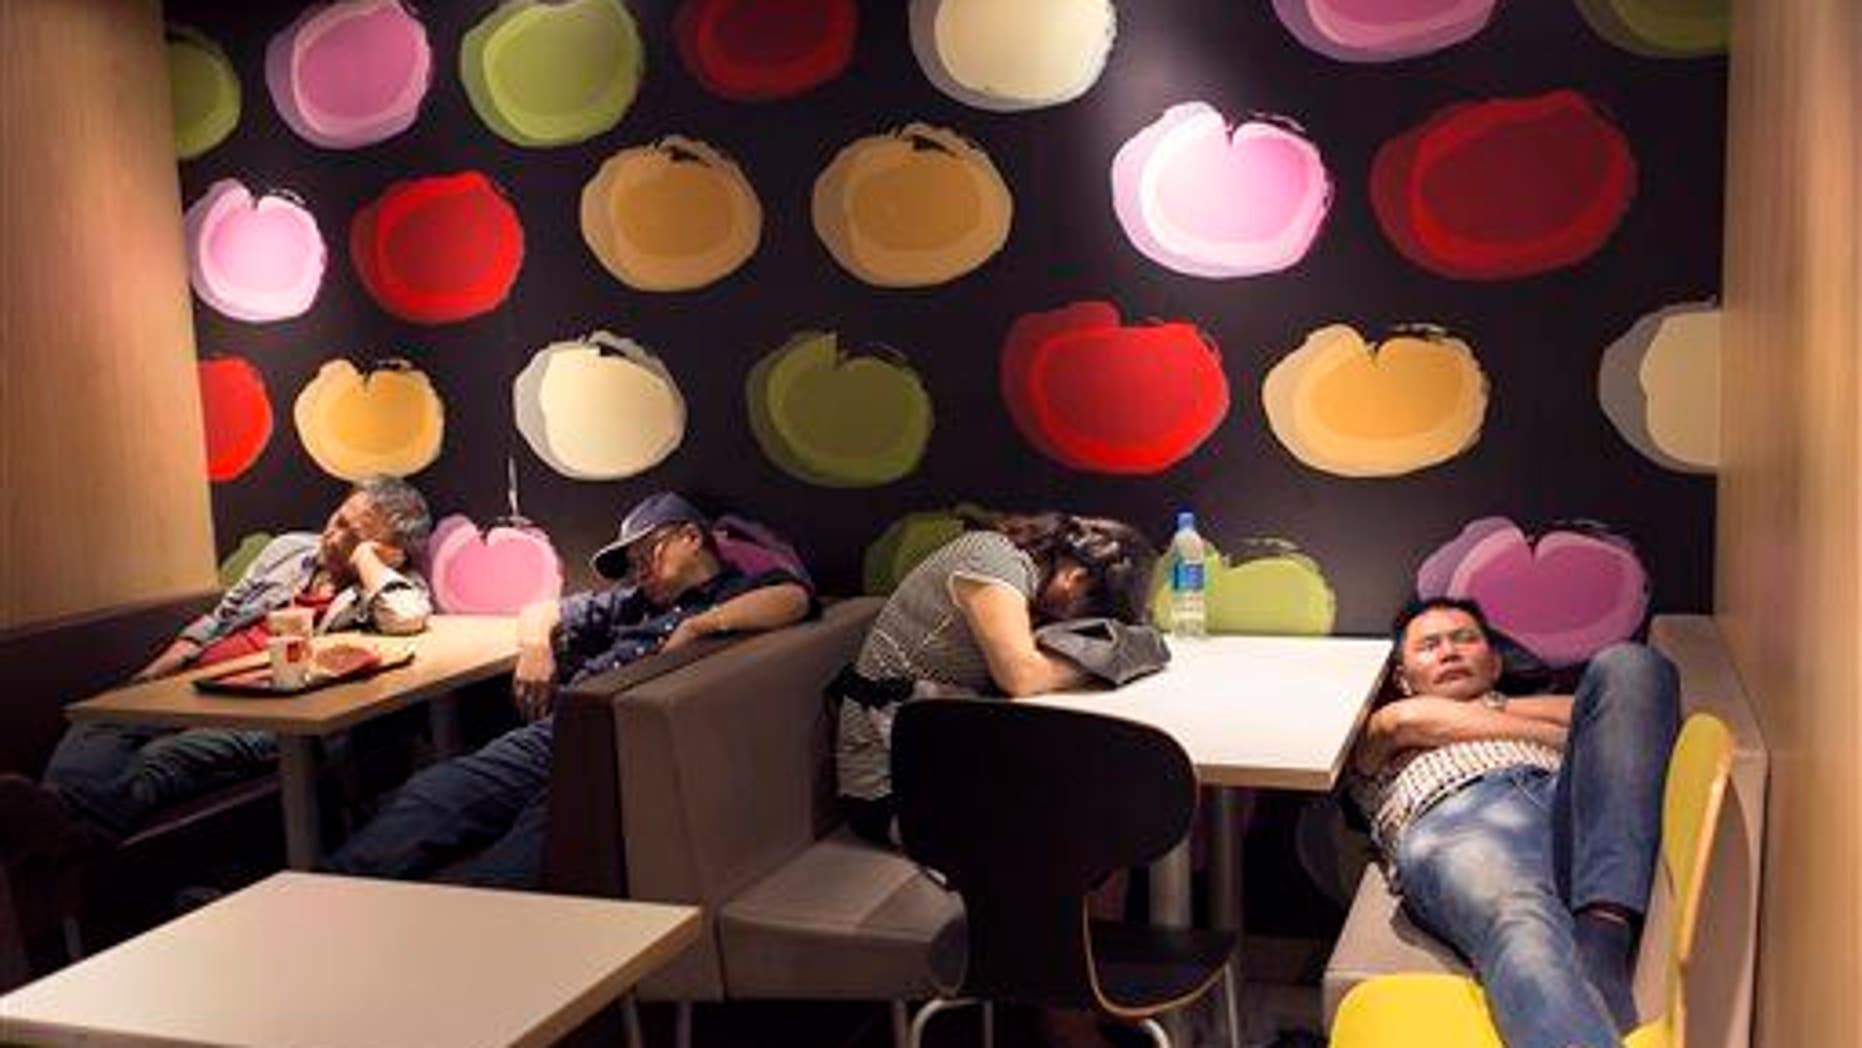 A group of people sleep in a 24-hour McDonald���s in Hong Kong. A new study found humans are more efficient sleepers than our primate ancestors.